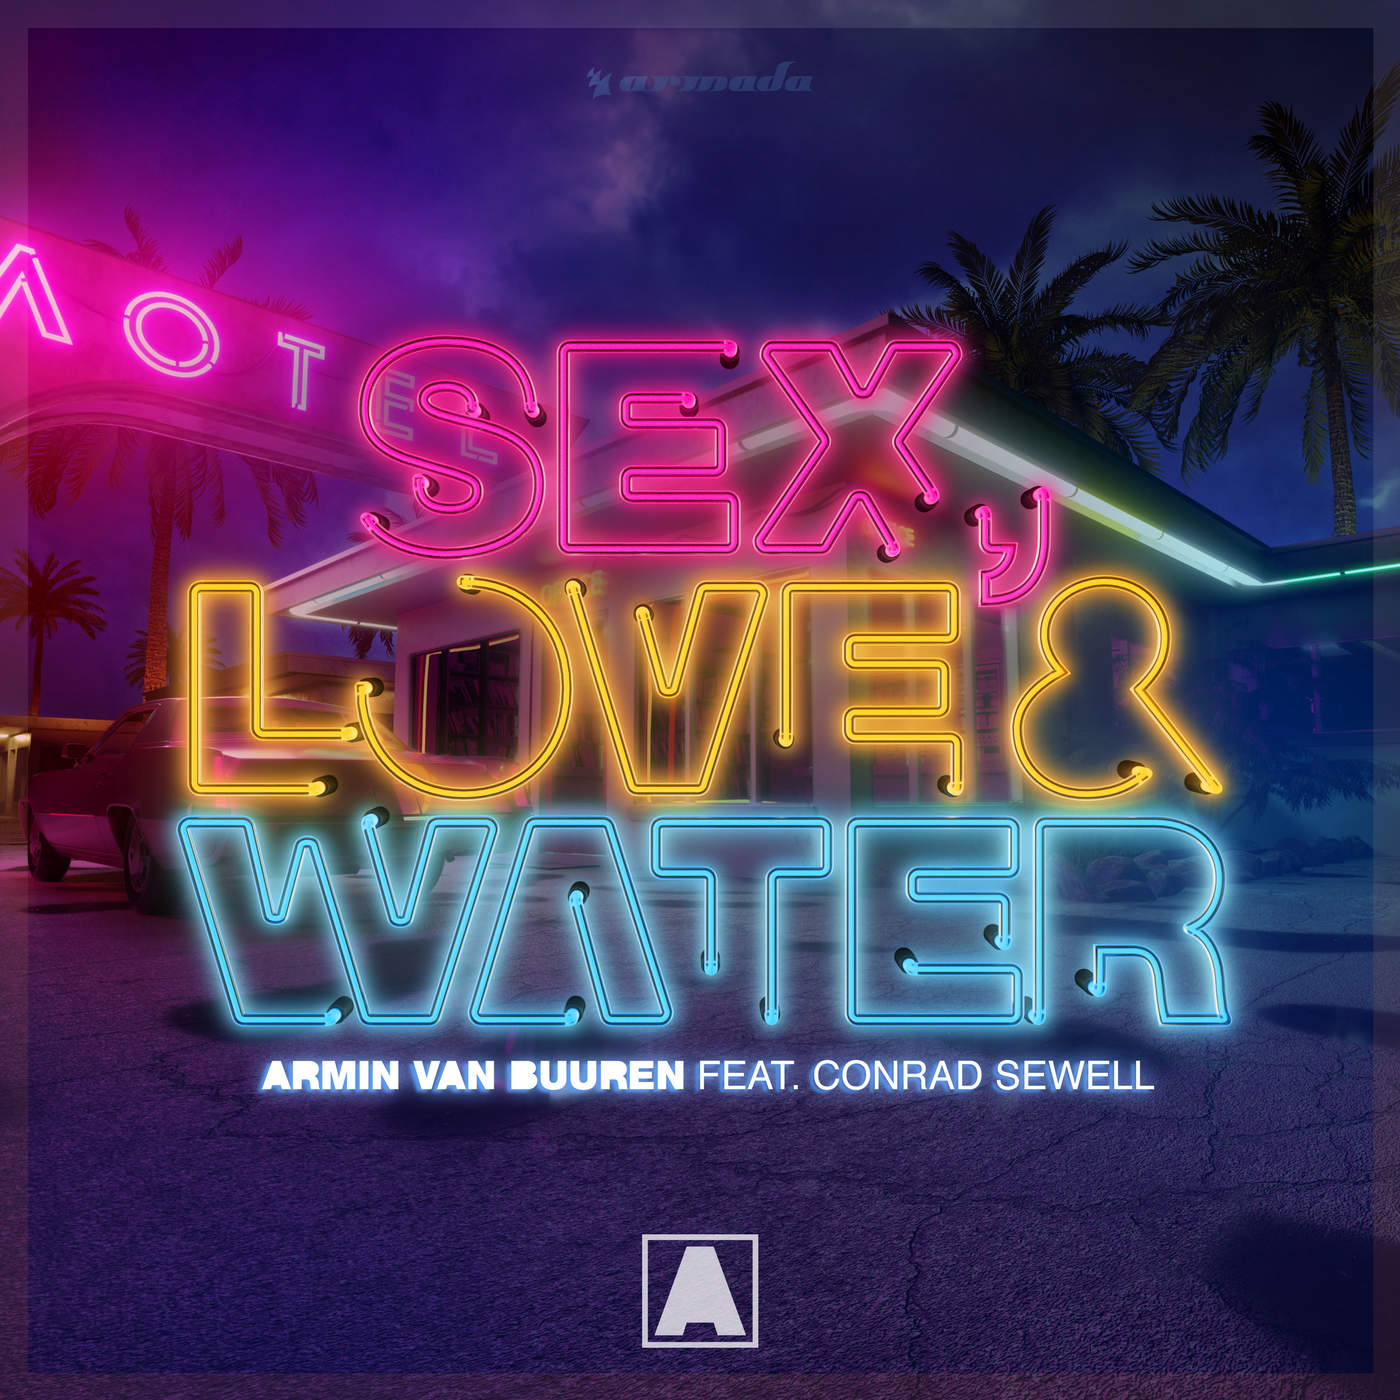 Armin van Buuren - Sex, Love & Water (feat. Conrad Sewell) - Single Cover